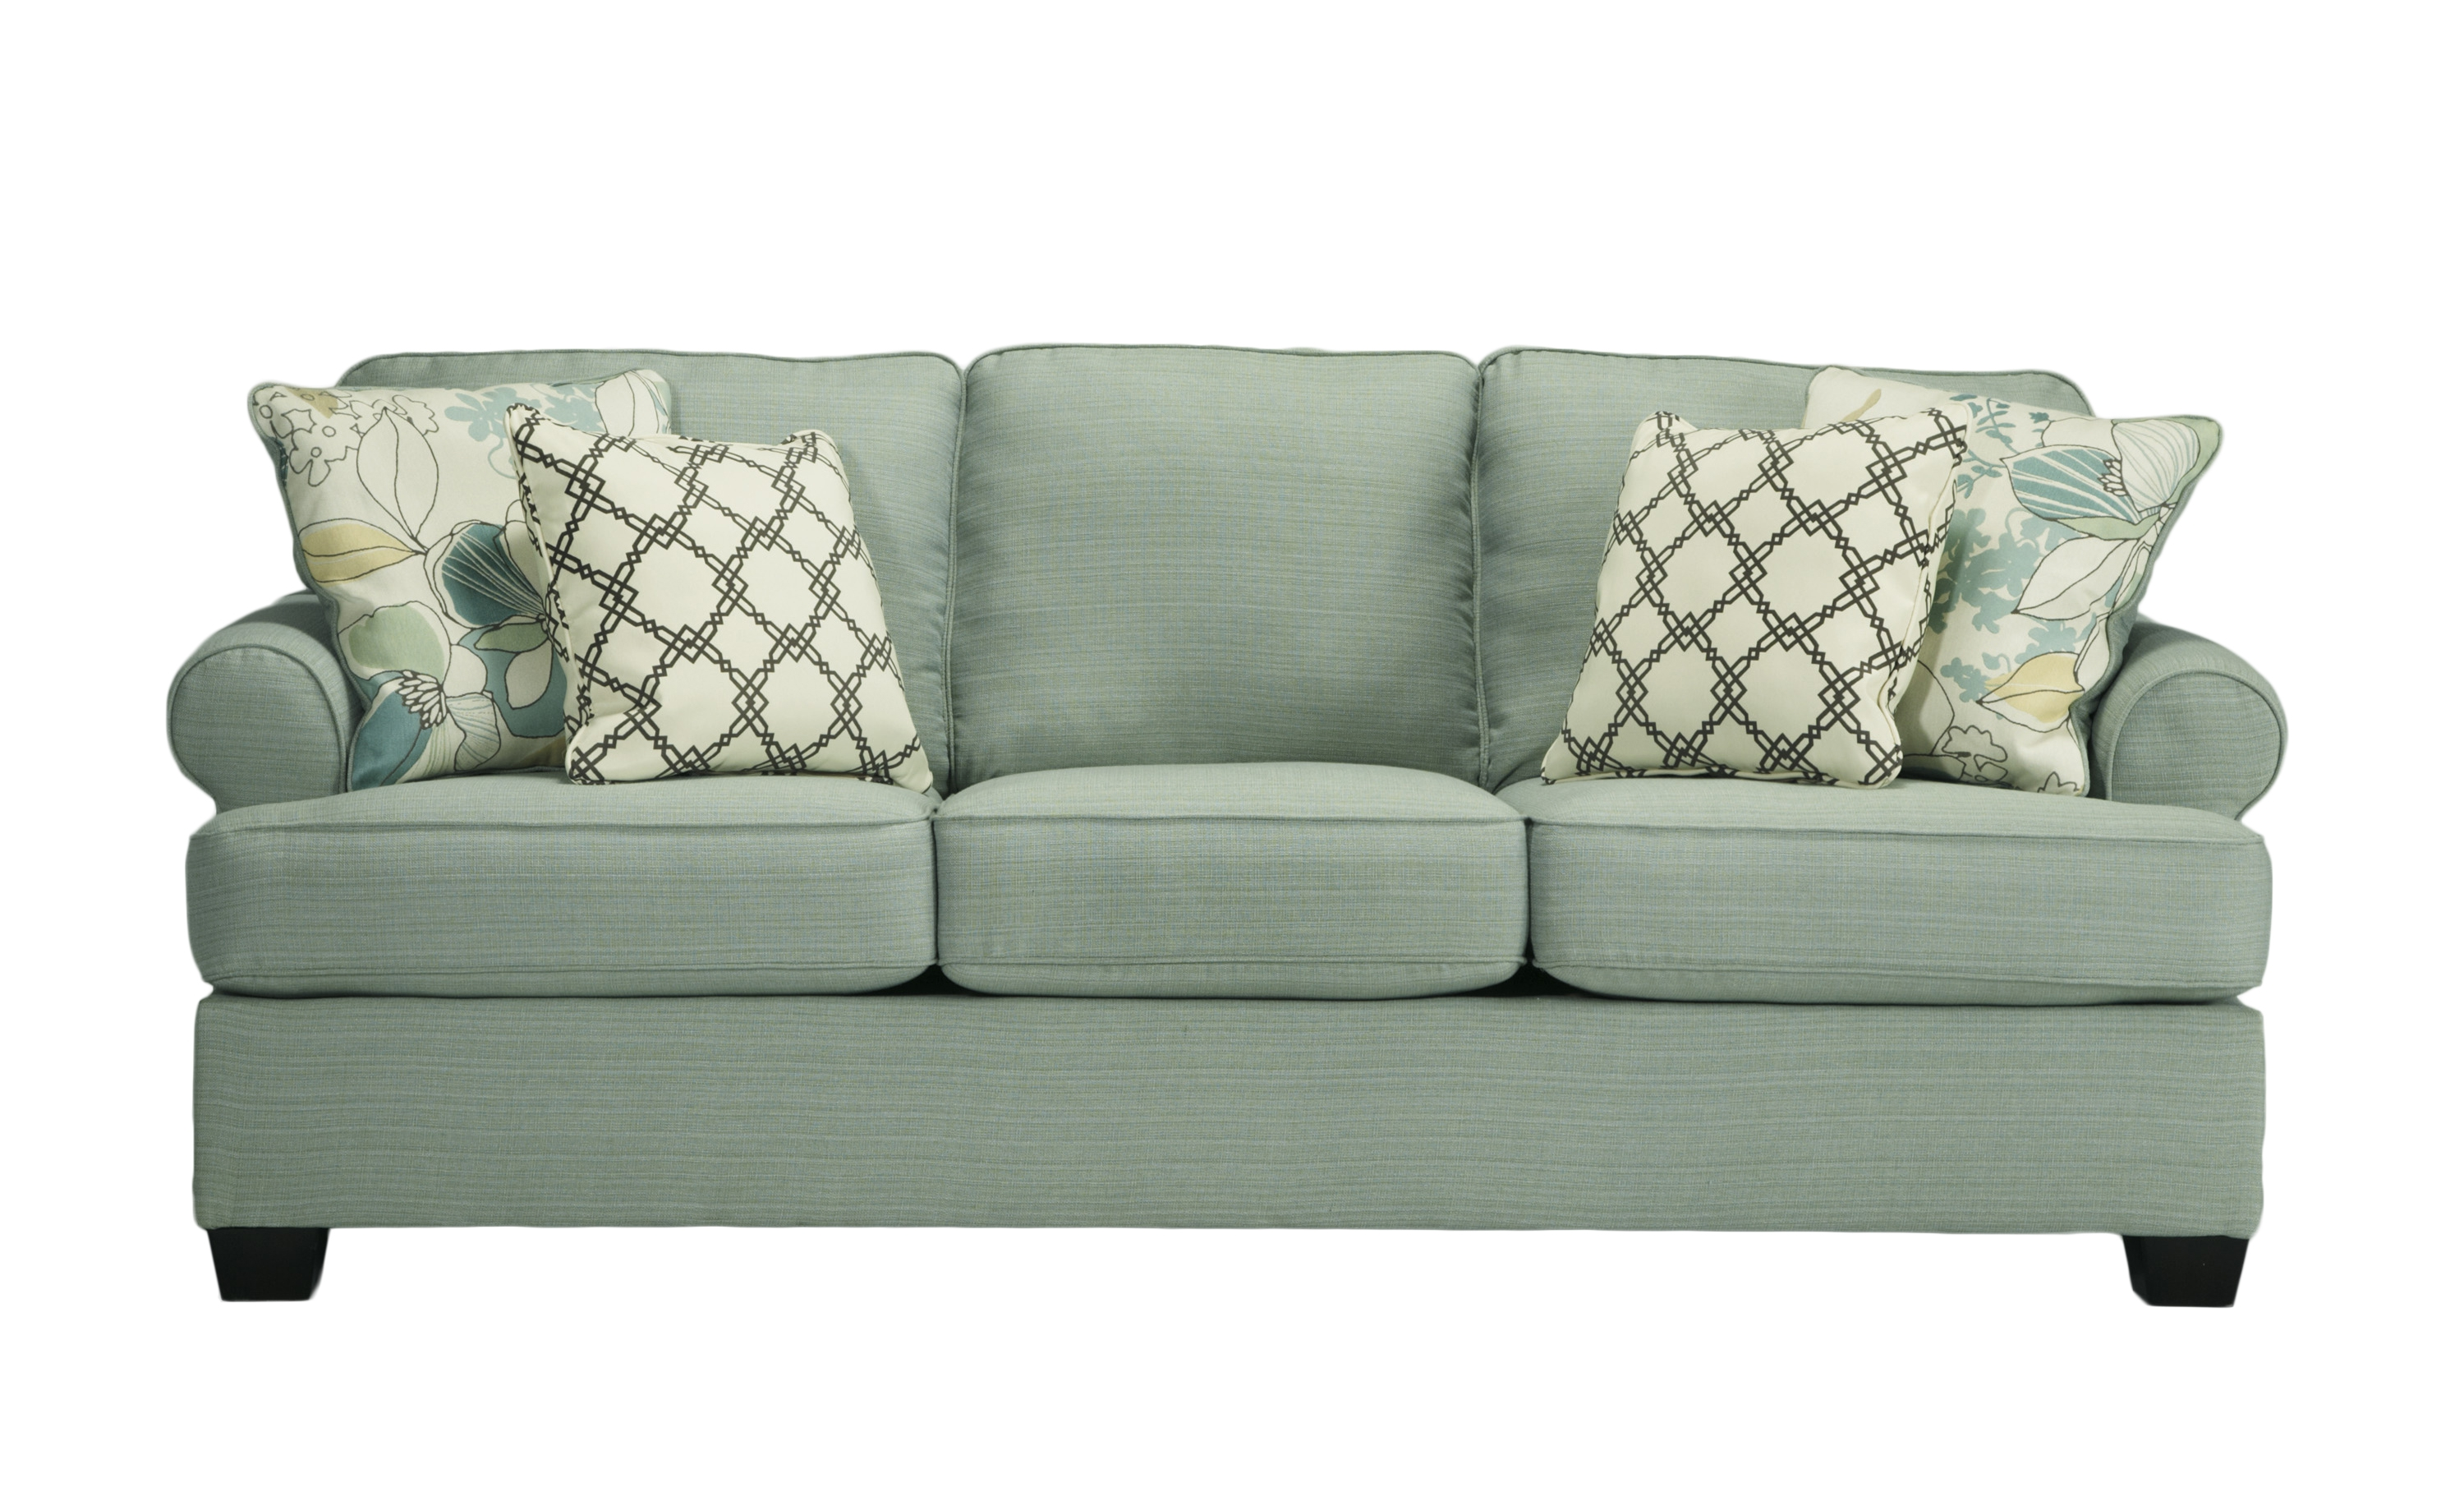 Ashley Furniture Daystar Seafoam Sofa Click To Enlarge